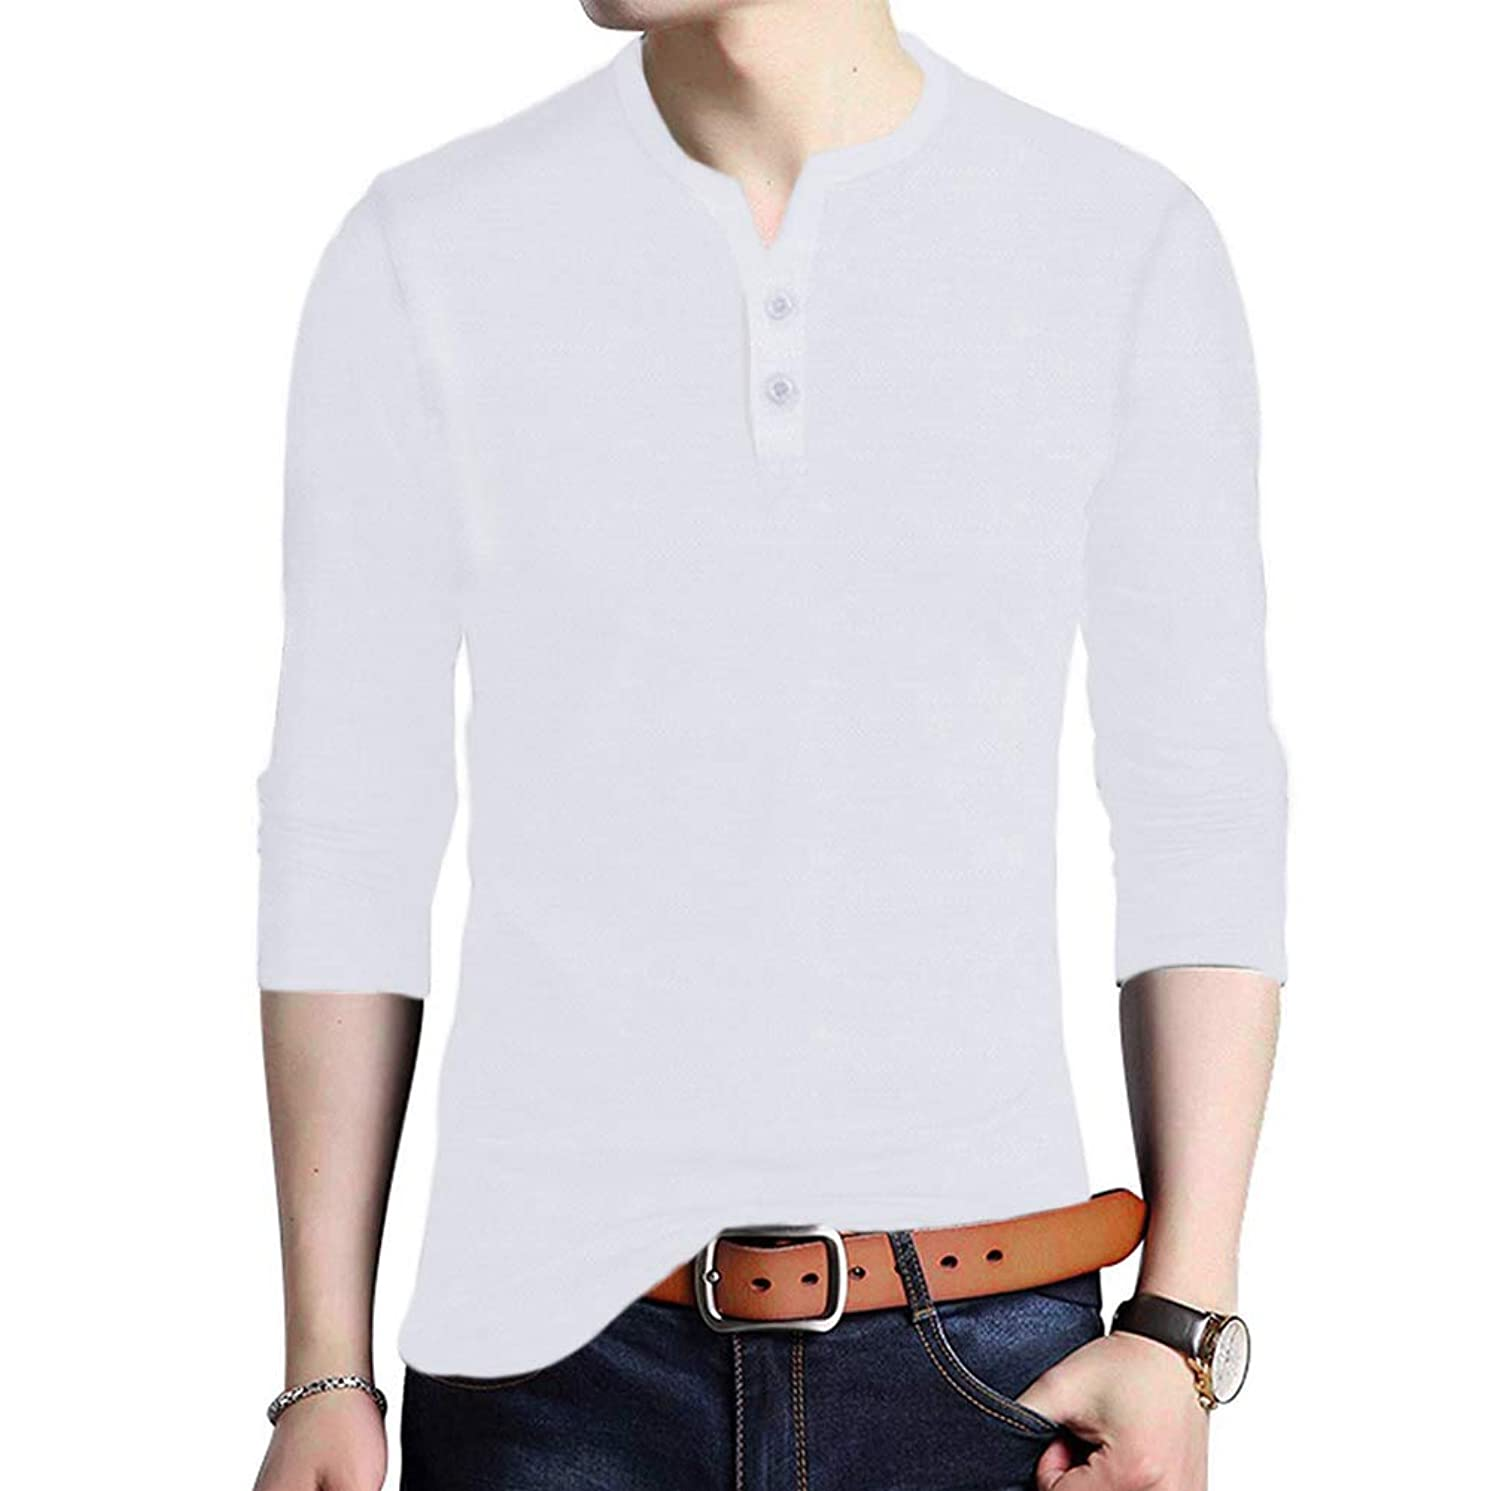 JXEWW Henley Mens Tshirts Polo Cotton Long Sleeves Slim Fit V Neck Button Tops Tees